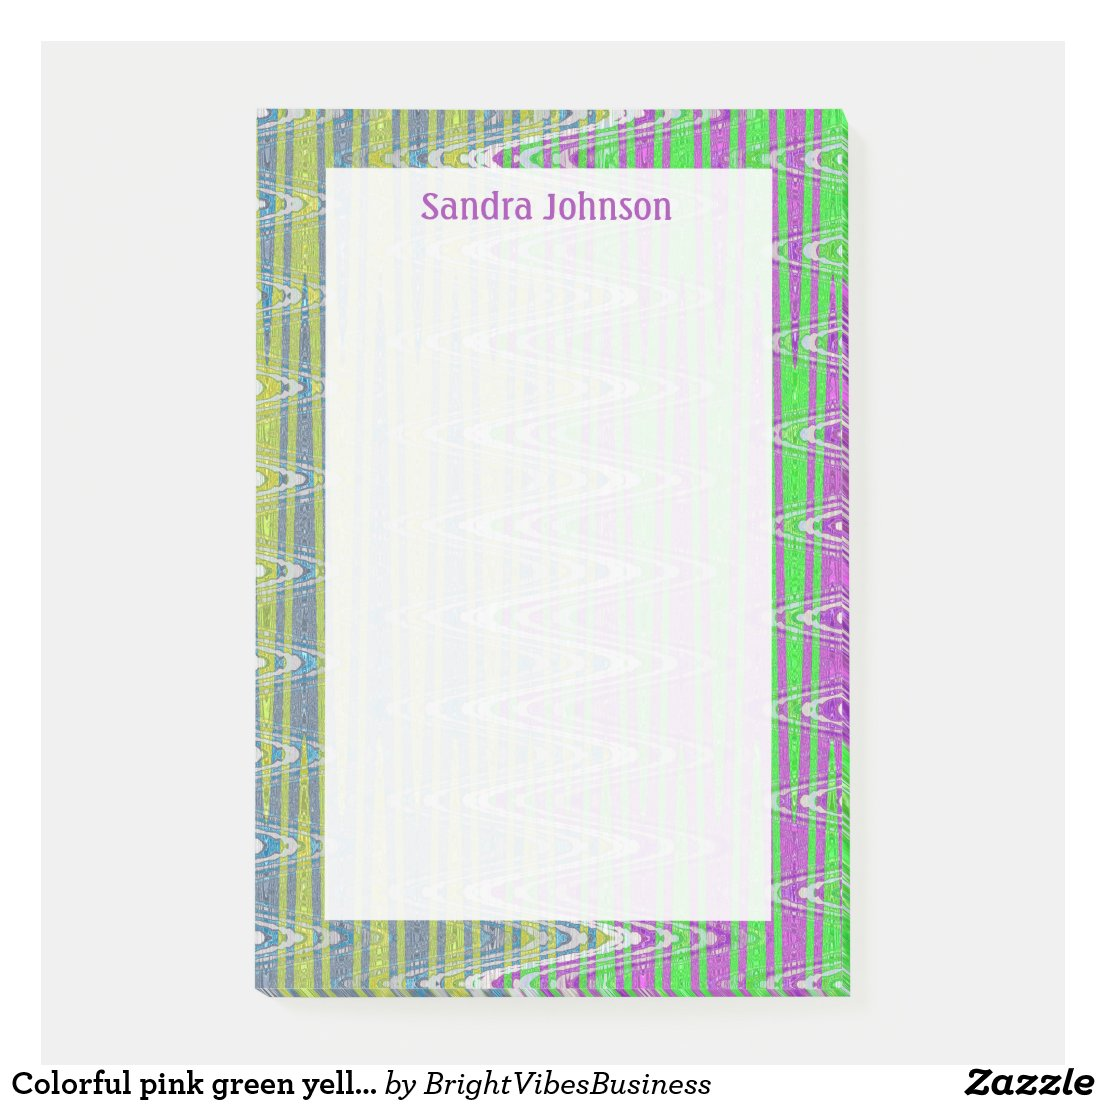 Colorful pink green yellow pattern post-it notes